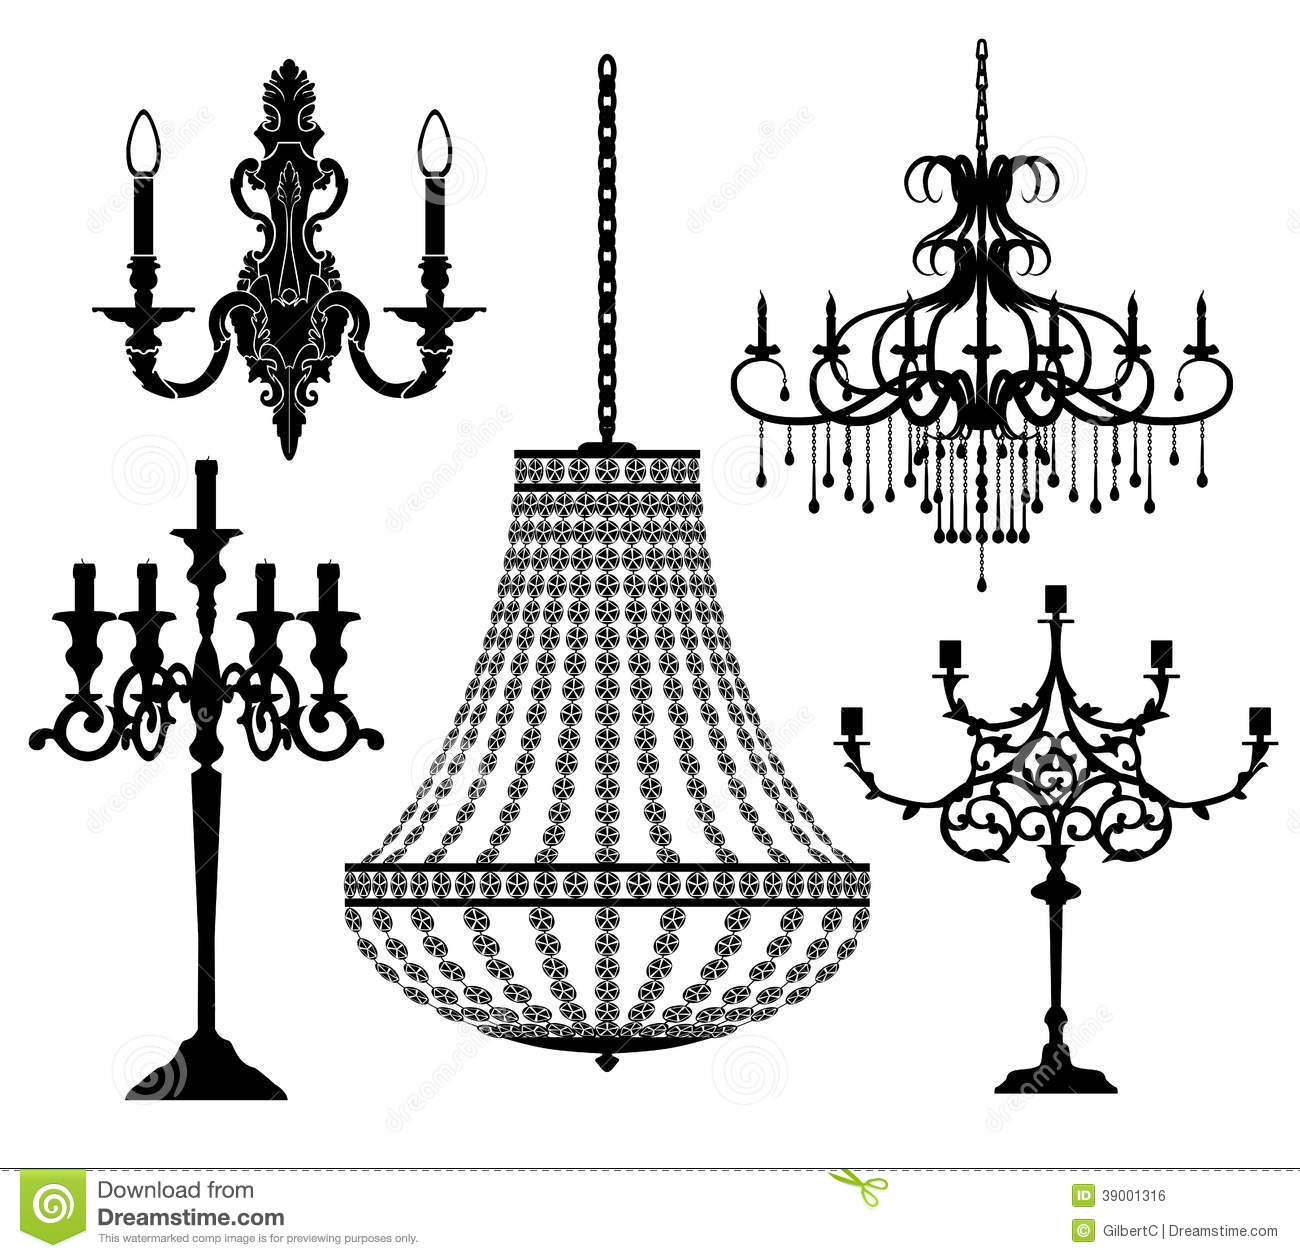 Candlesticks And Chandeliers Stock Vector Image 39001316 : candlesticks chandeliers set vector illustration 39001316 from dreamstime.com size 1300 x 1258 jpeg 191kB